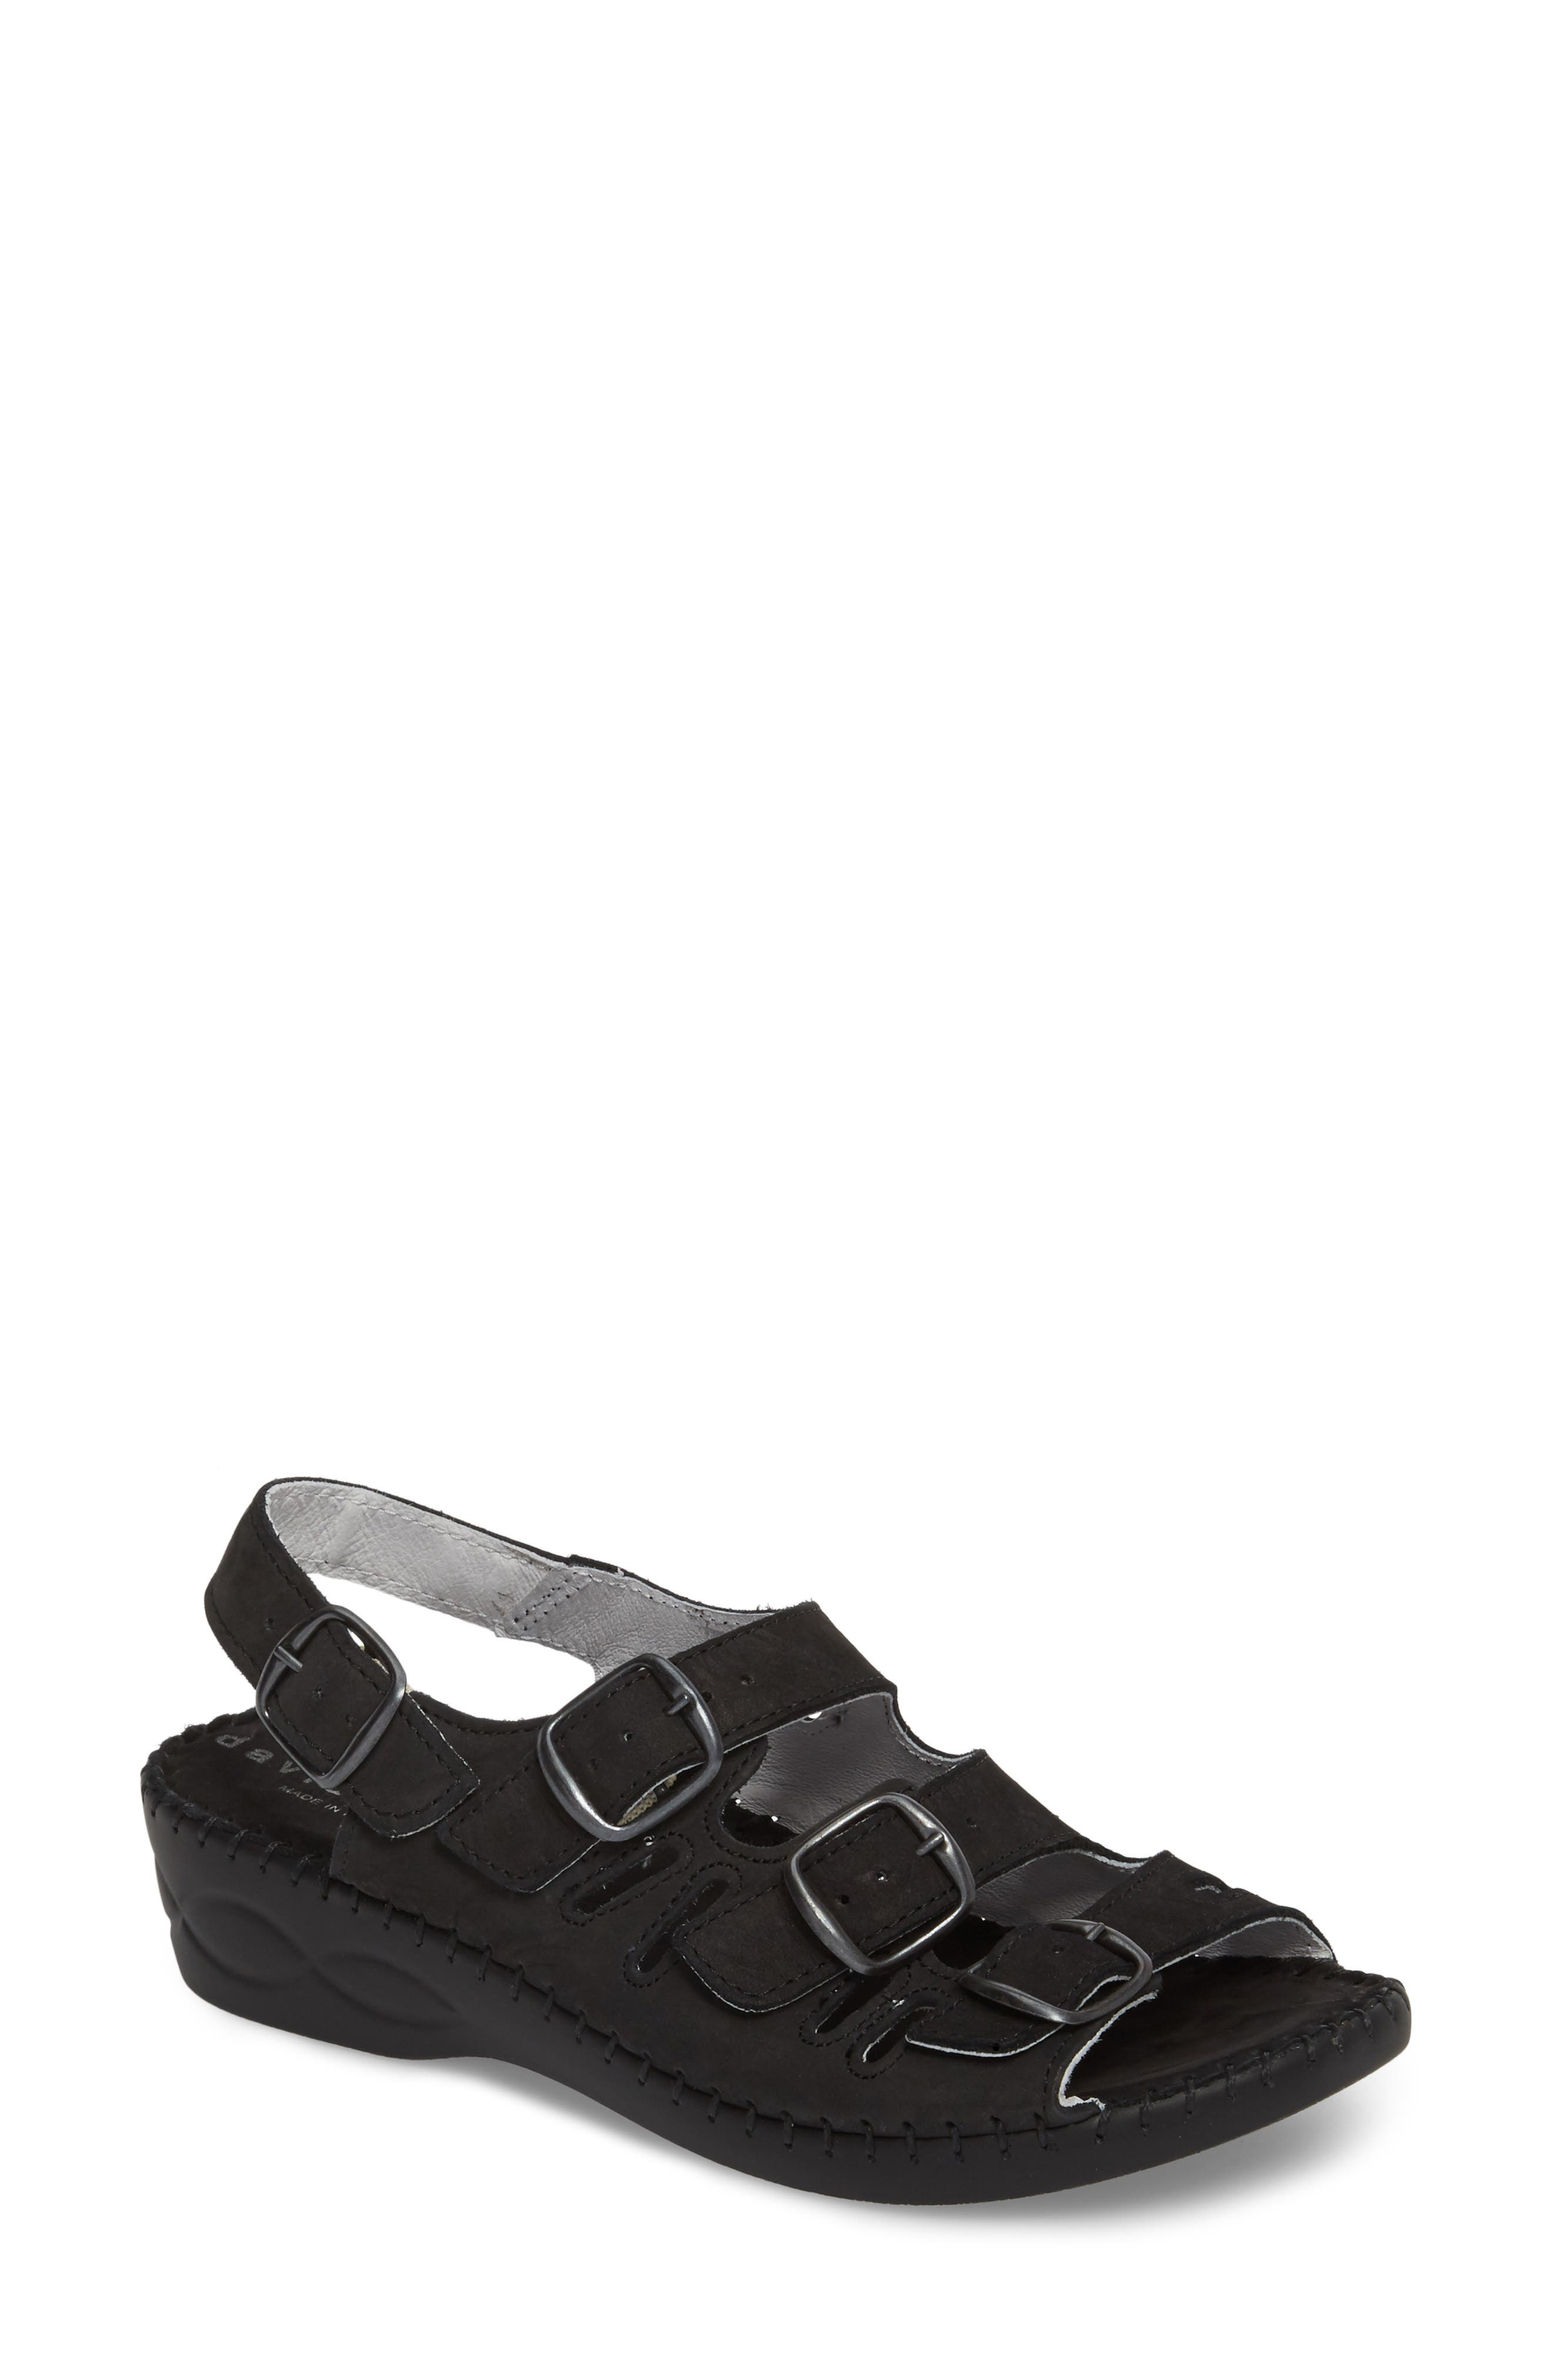 DAVID TATE, Luna Slingback Wedge Sandal, Main thumbnail 1, color, BLACK NUBUCK